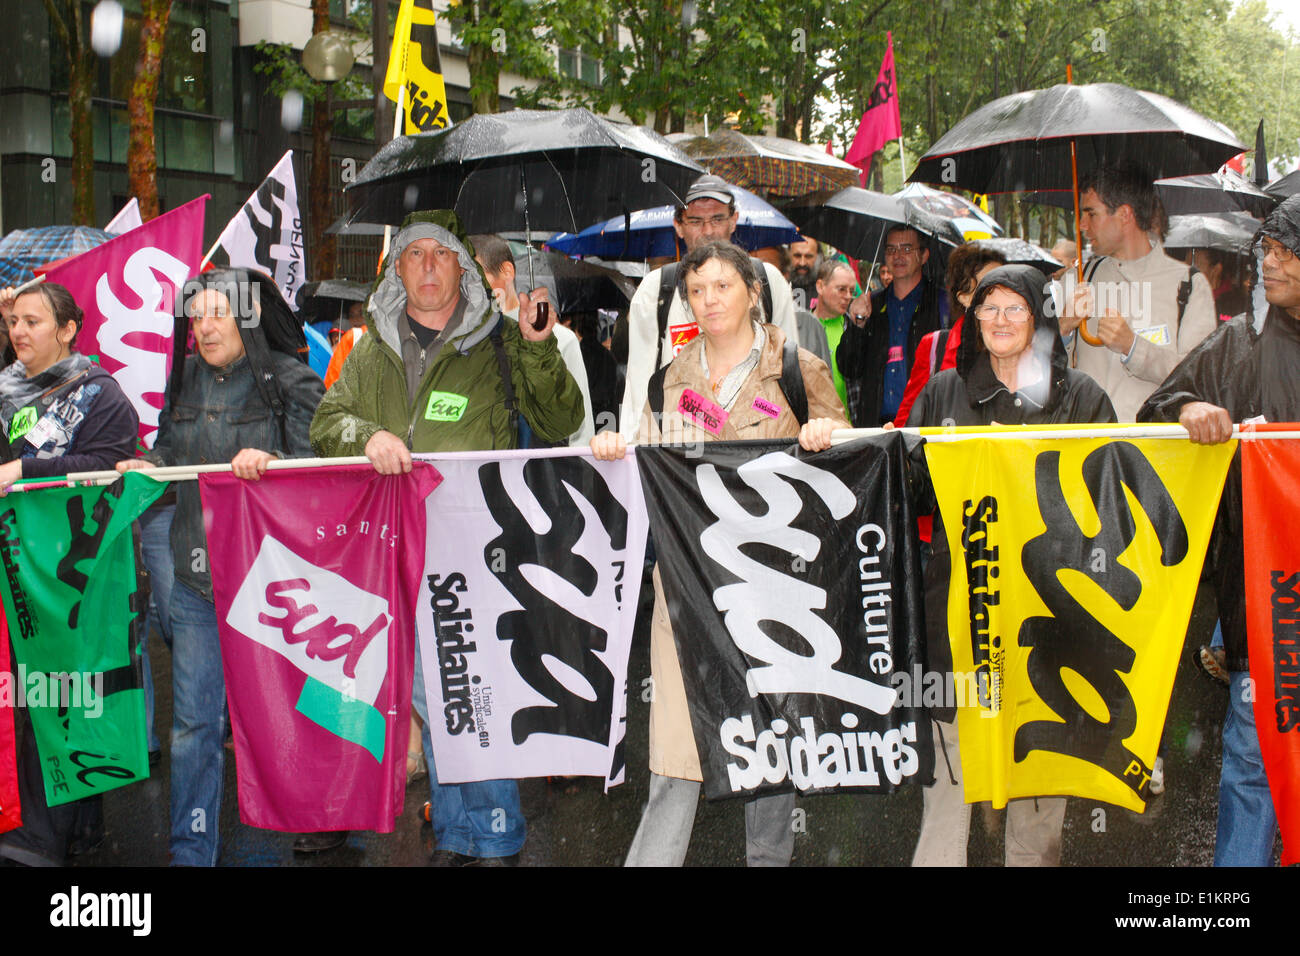 Demonstration against pension reform - Stock Image